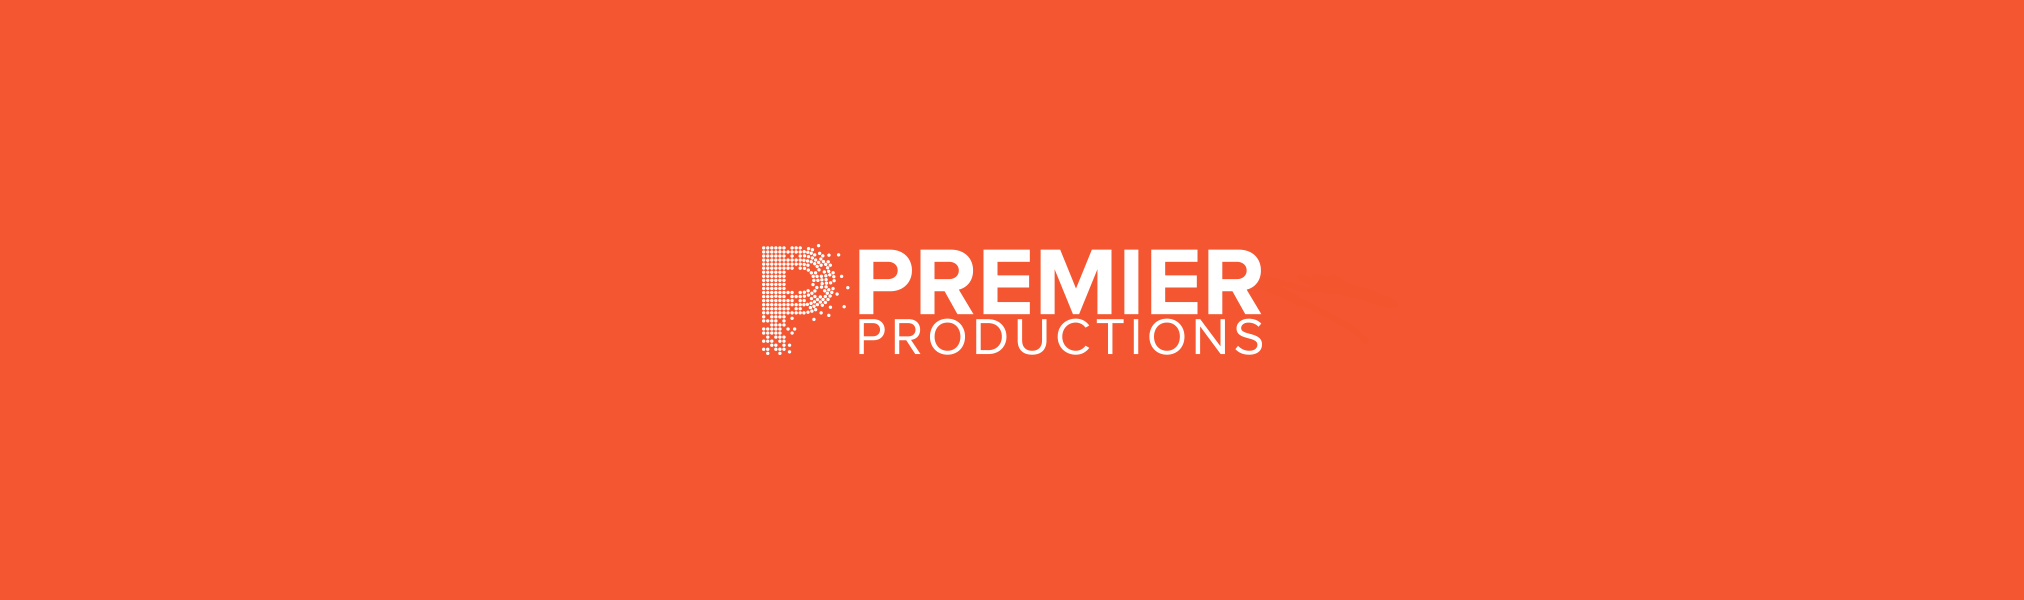 Premier Productions Website